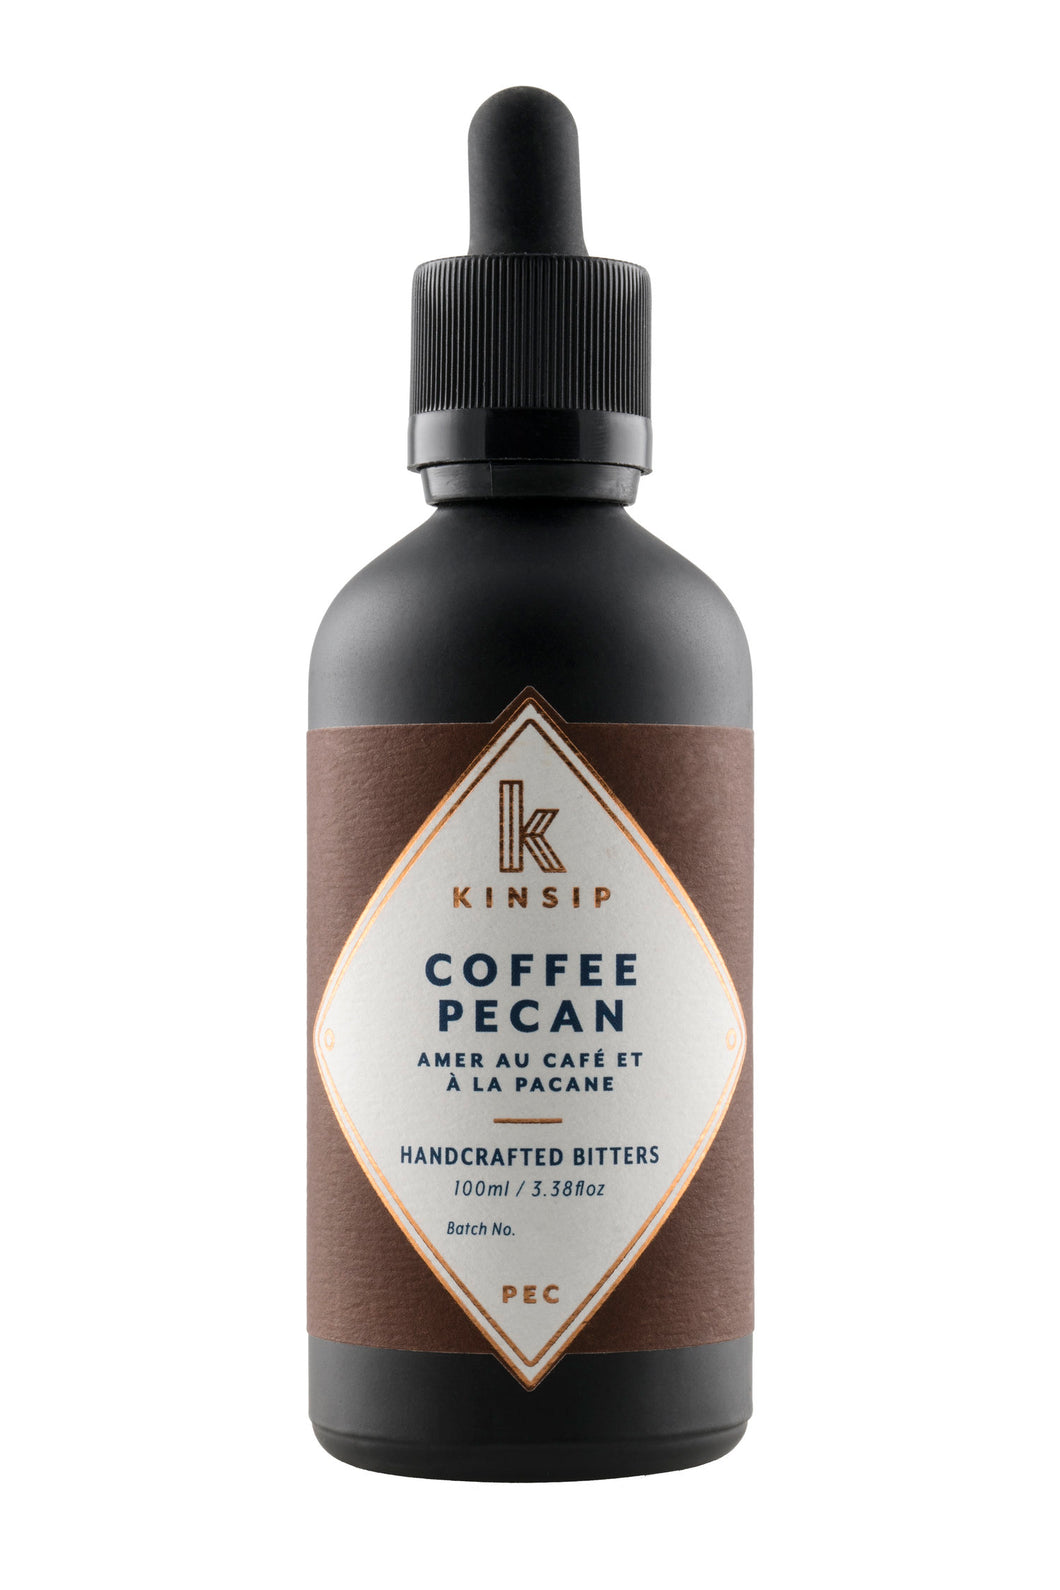 Coffee Pecan Handcrafted Bitters